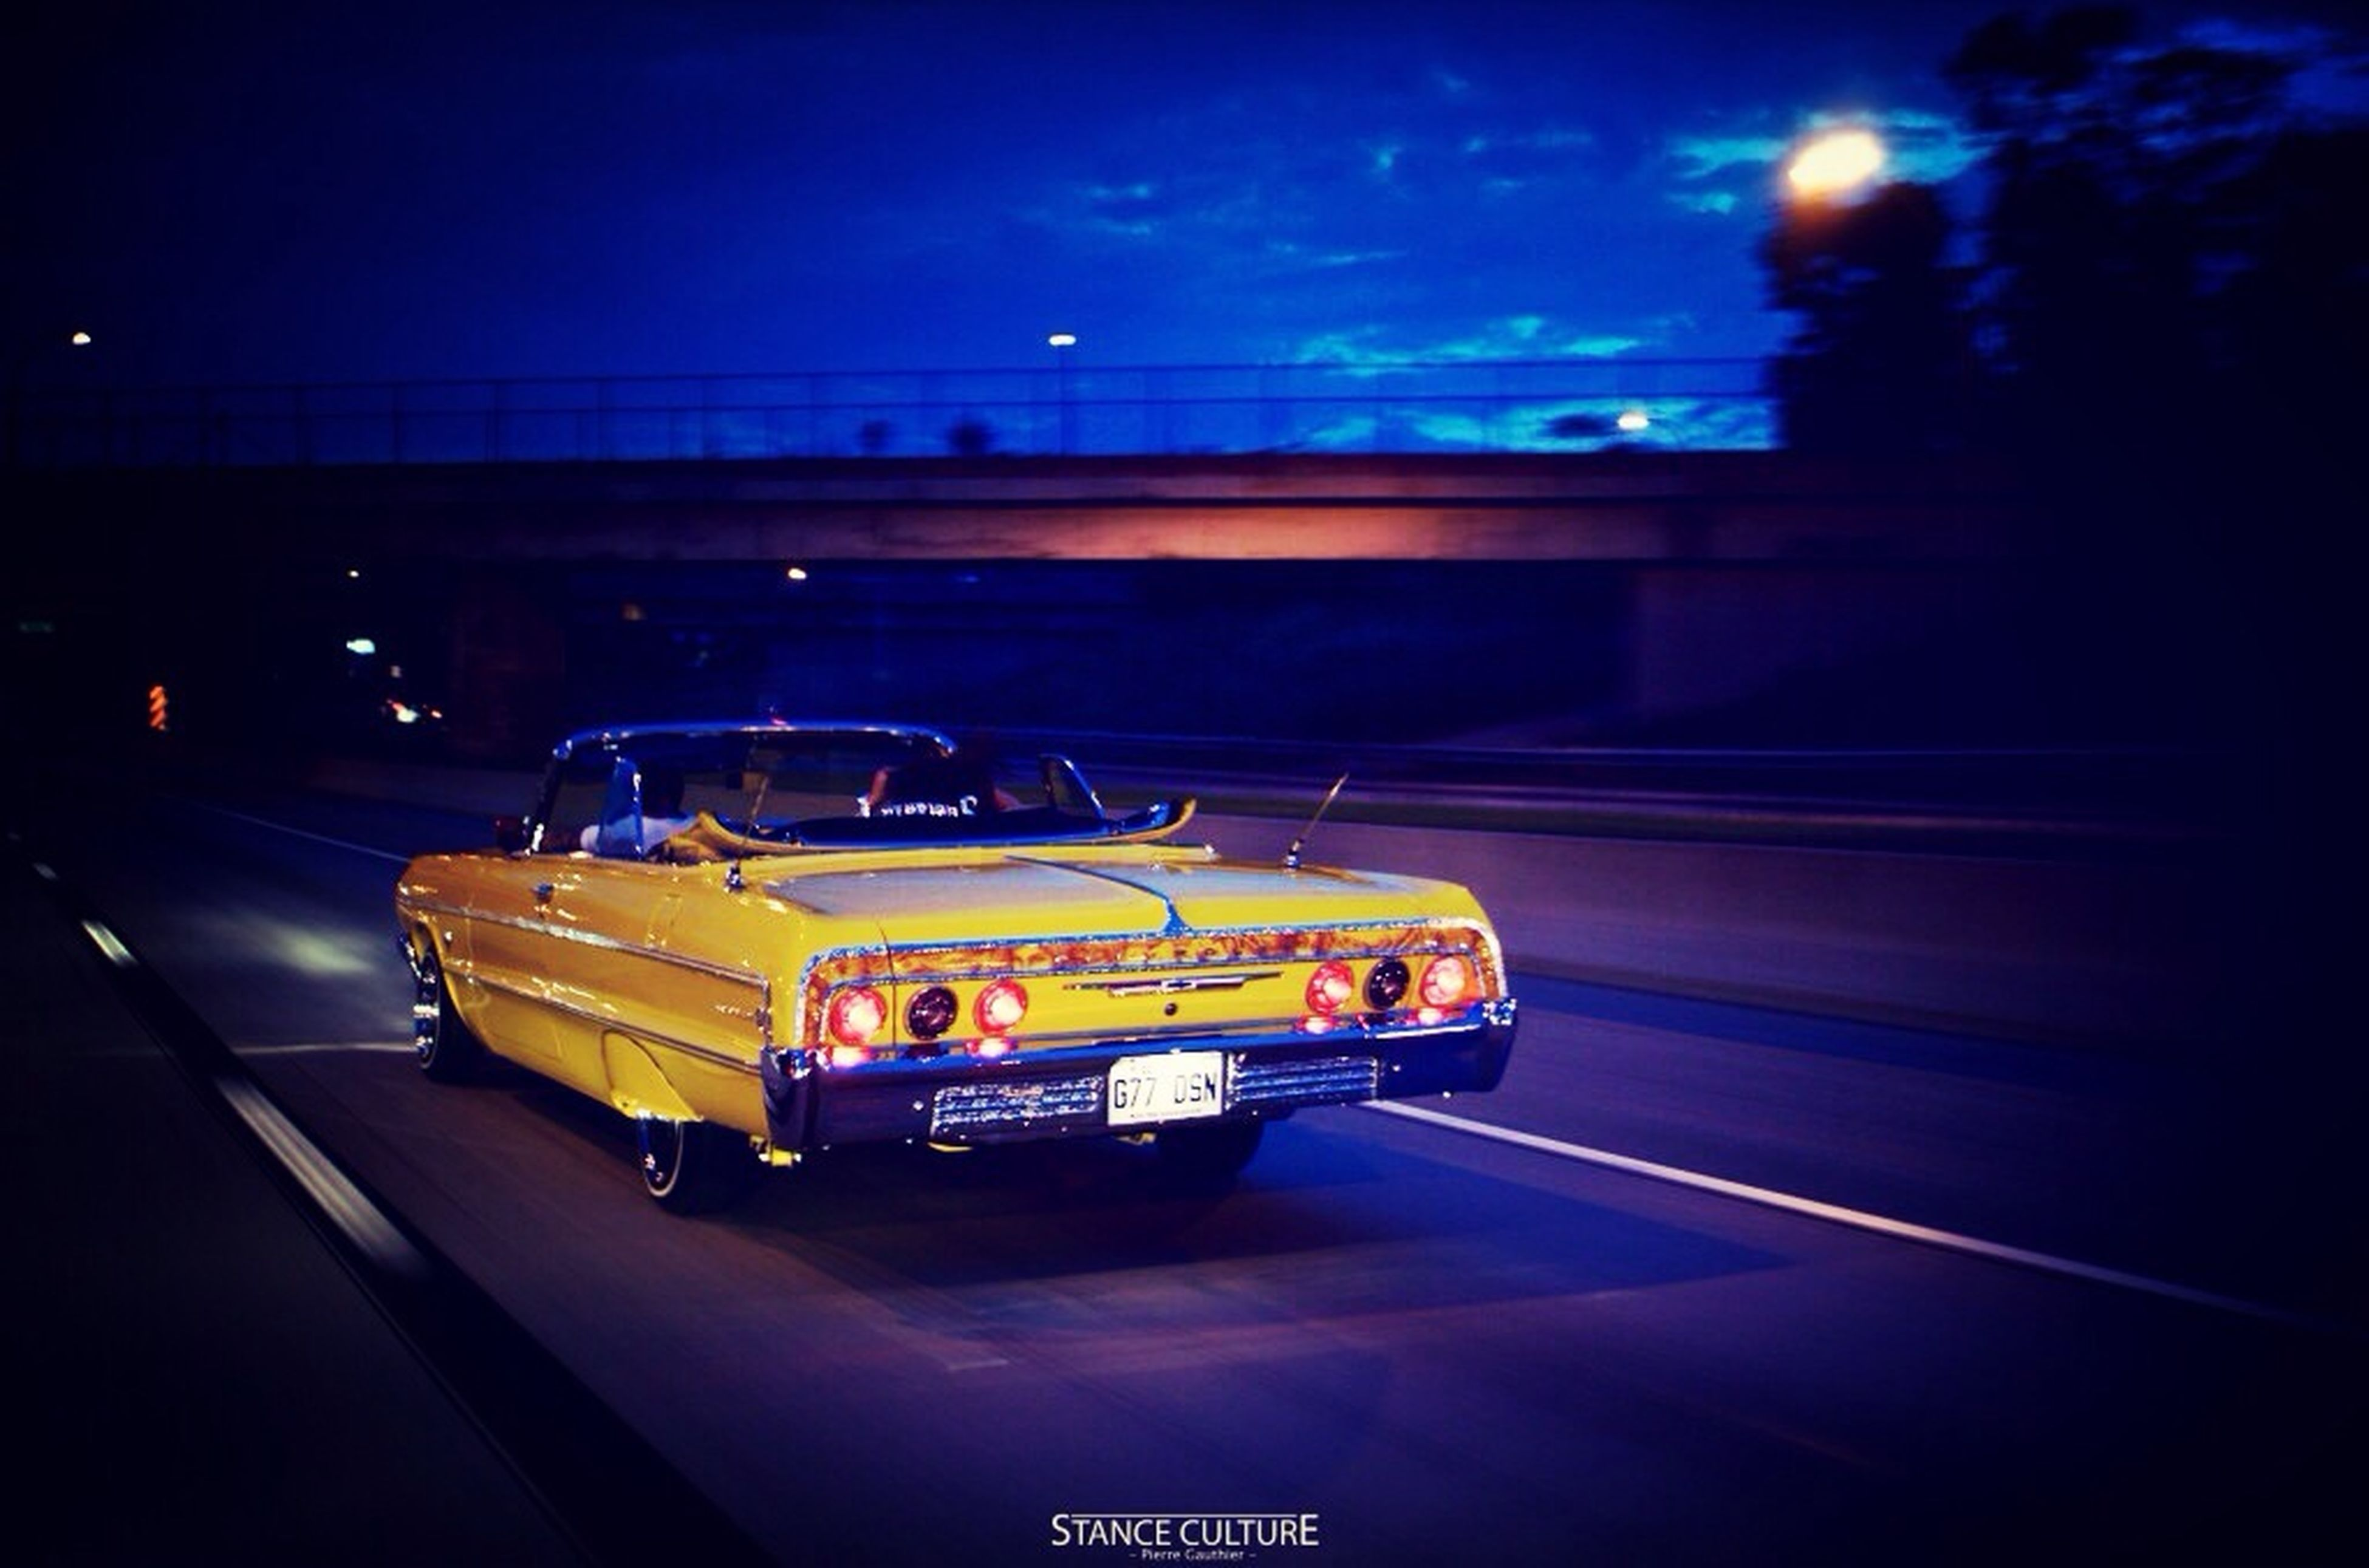 transportation, mode of transport, car, land vehicle, night, illuminated, on the move, traffic, road, street, motion, travel, sky, speed, city, outdoors, yellow, no people, vehicle, built structure